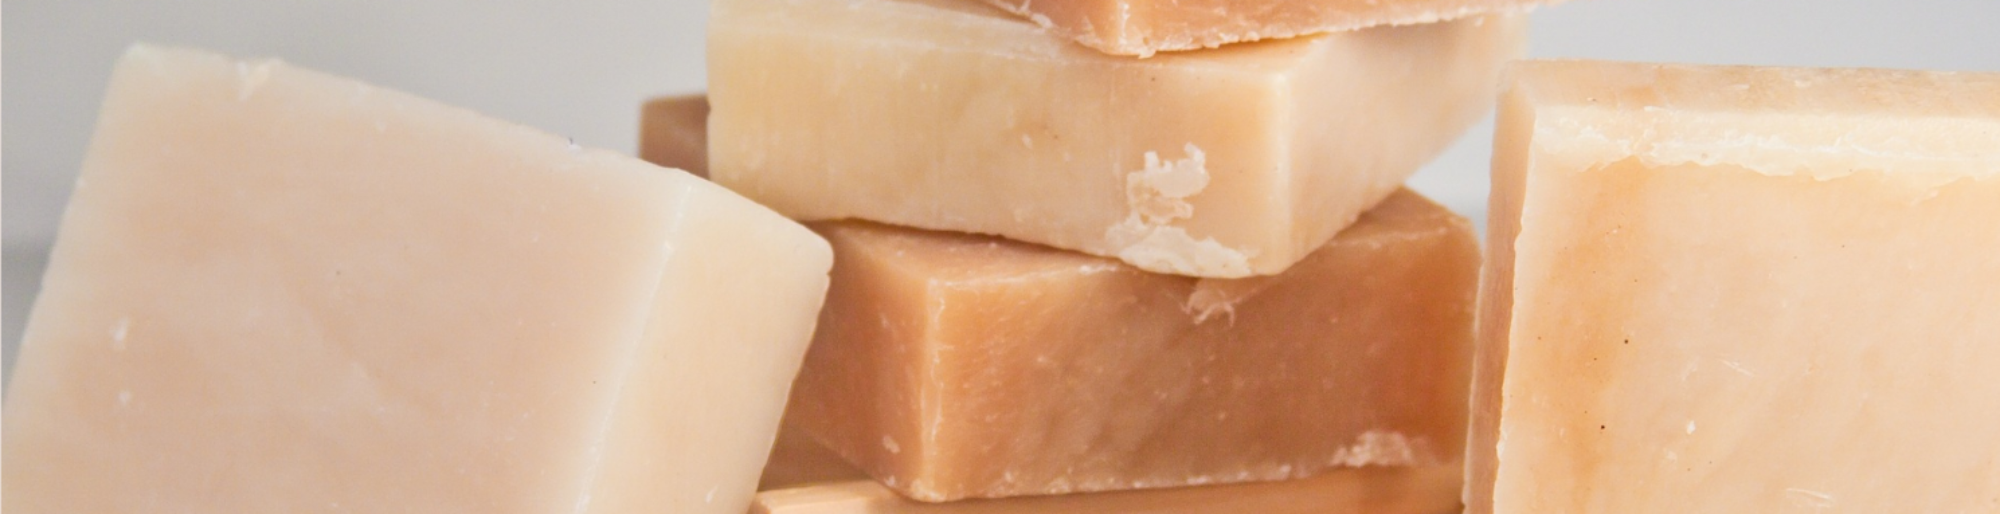 Luxuriously Natural Soaps, LLC